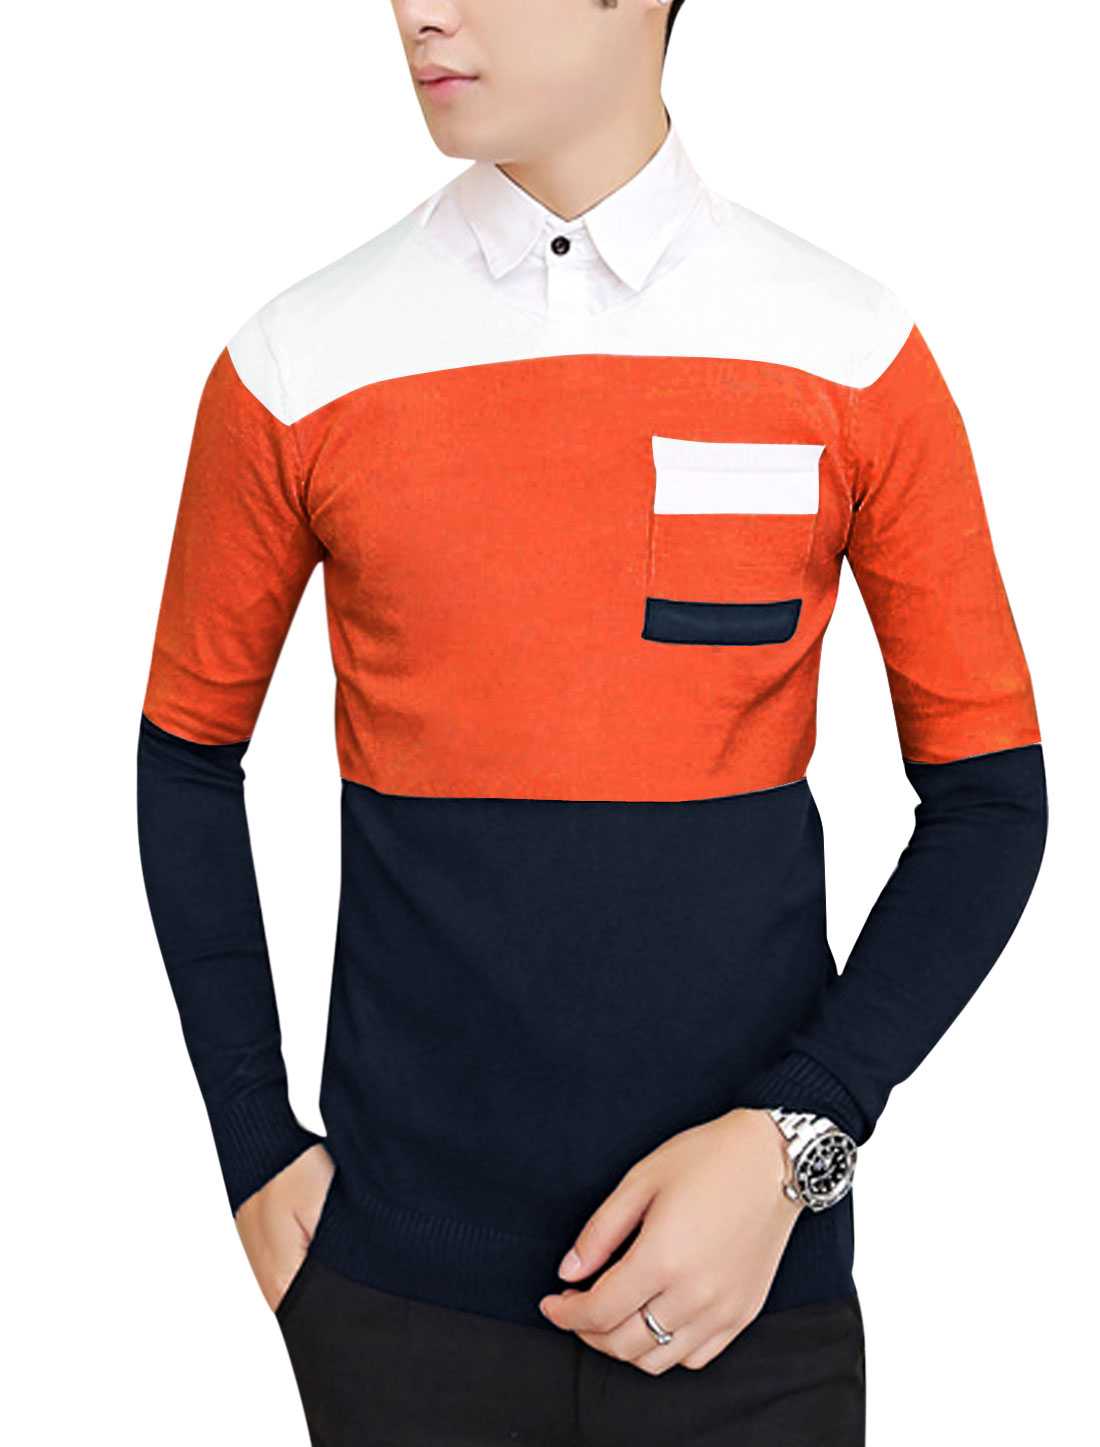 Men Pullover Color Block Slim Knit Shirt Orange Red Navy Blue S